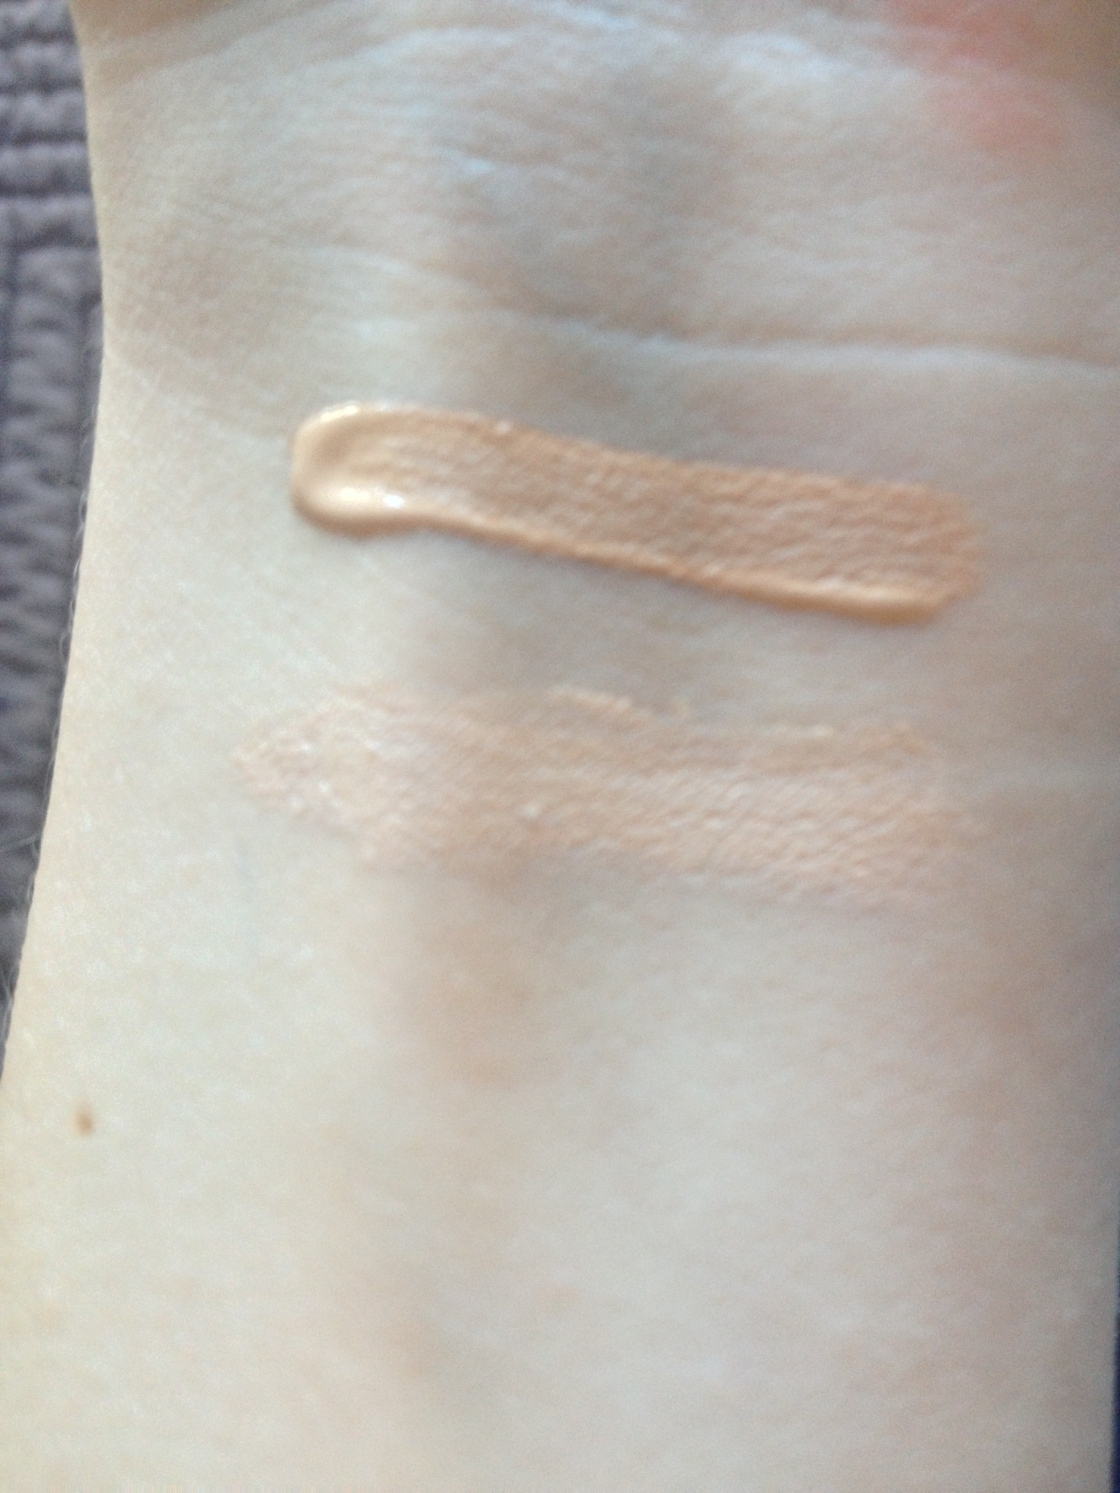 top - Maybelline, bottom - Rimmel